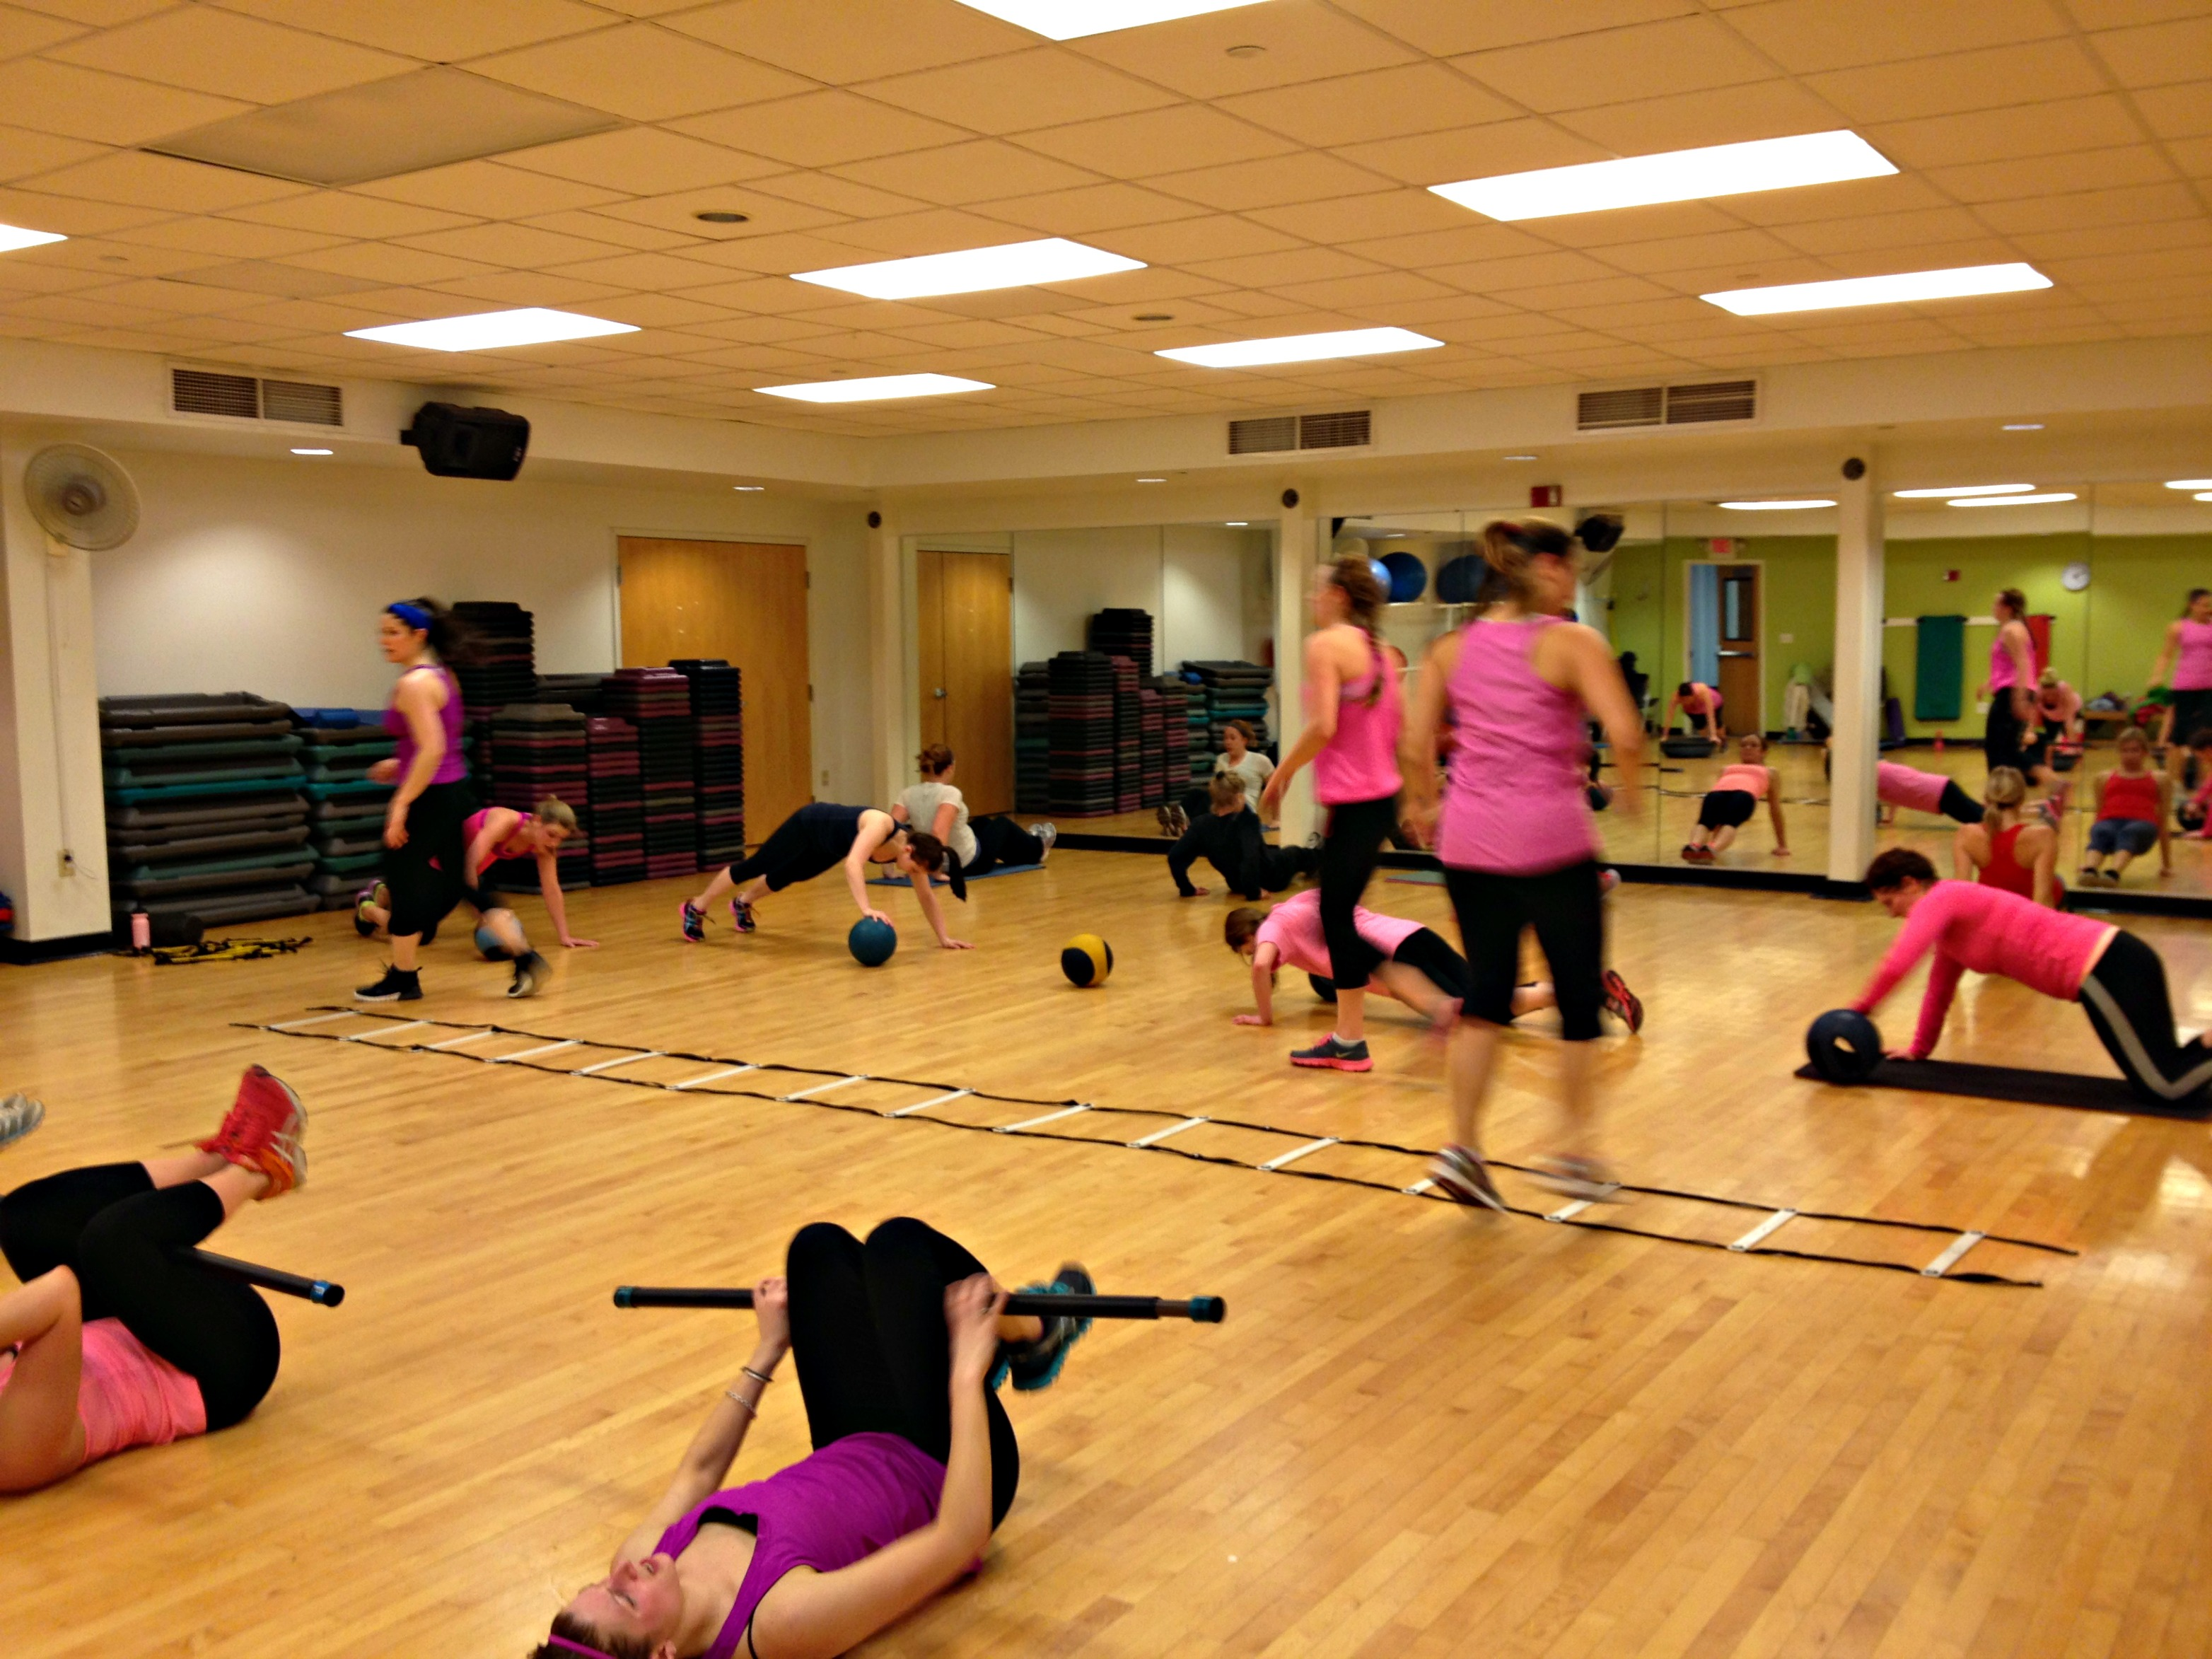 Three Mistakes I Made as a Beginner Fitness Instructor